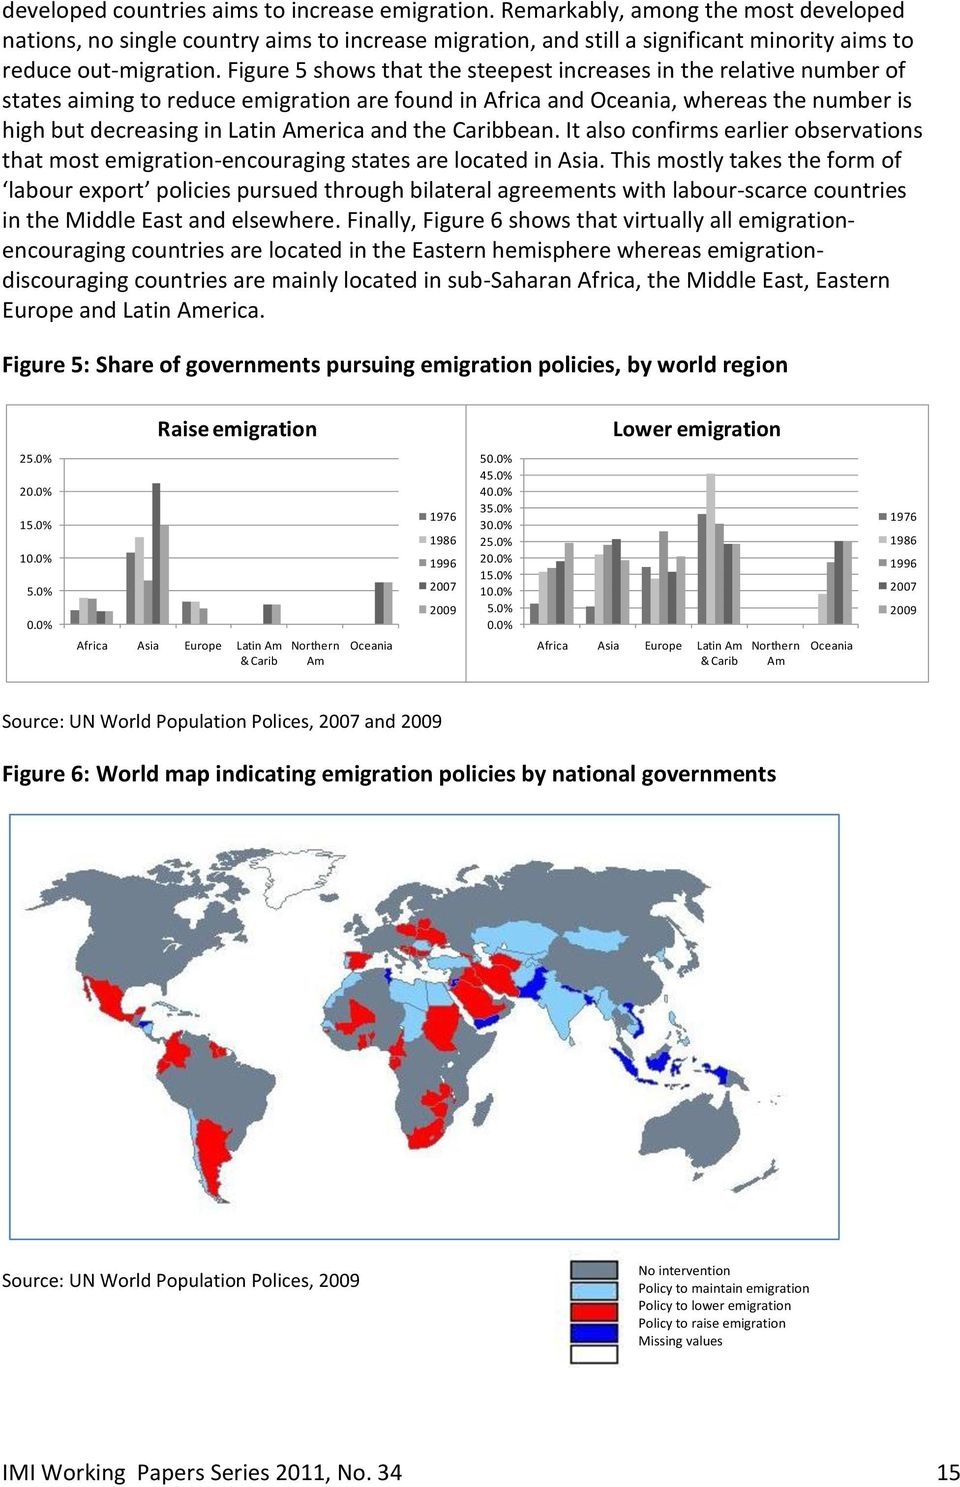 Figure 5 shows that the steepest increases in the relative number of states aiming to reduce emigration are found in Africa and Oceania, whereas the number is high but decreasing in Latin America and